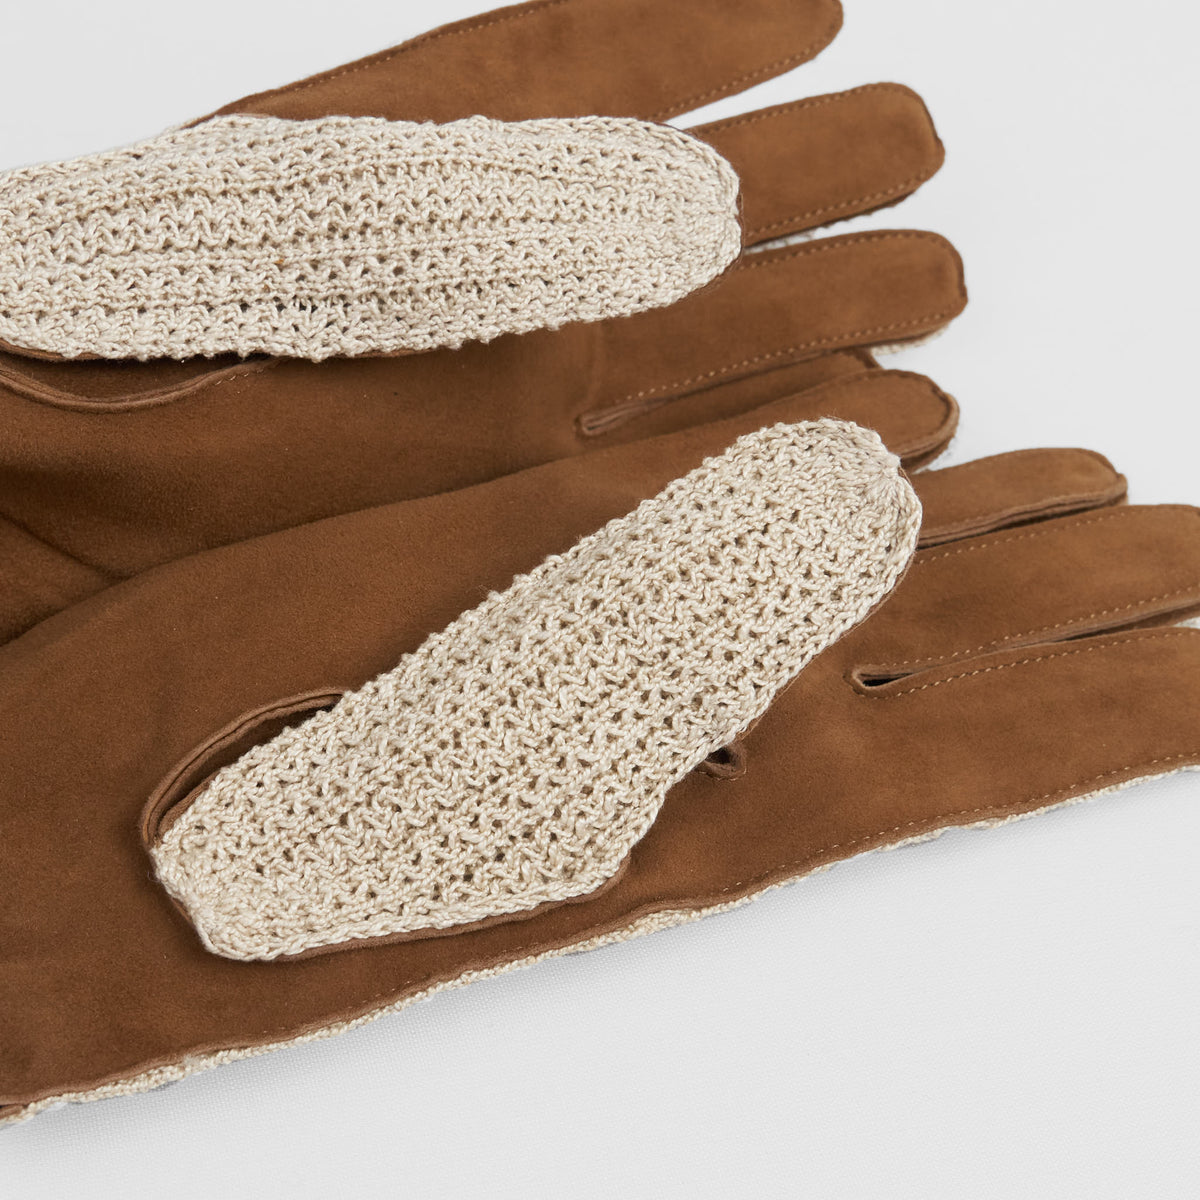 DeeCee style Leather and Cotton Hand Crafted Crochet Gloves